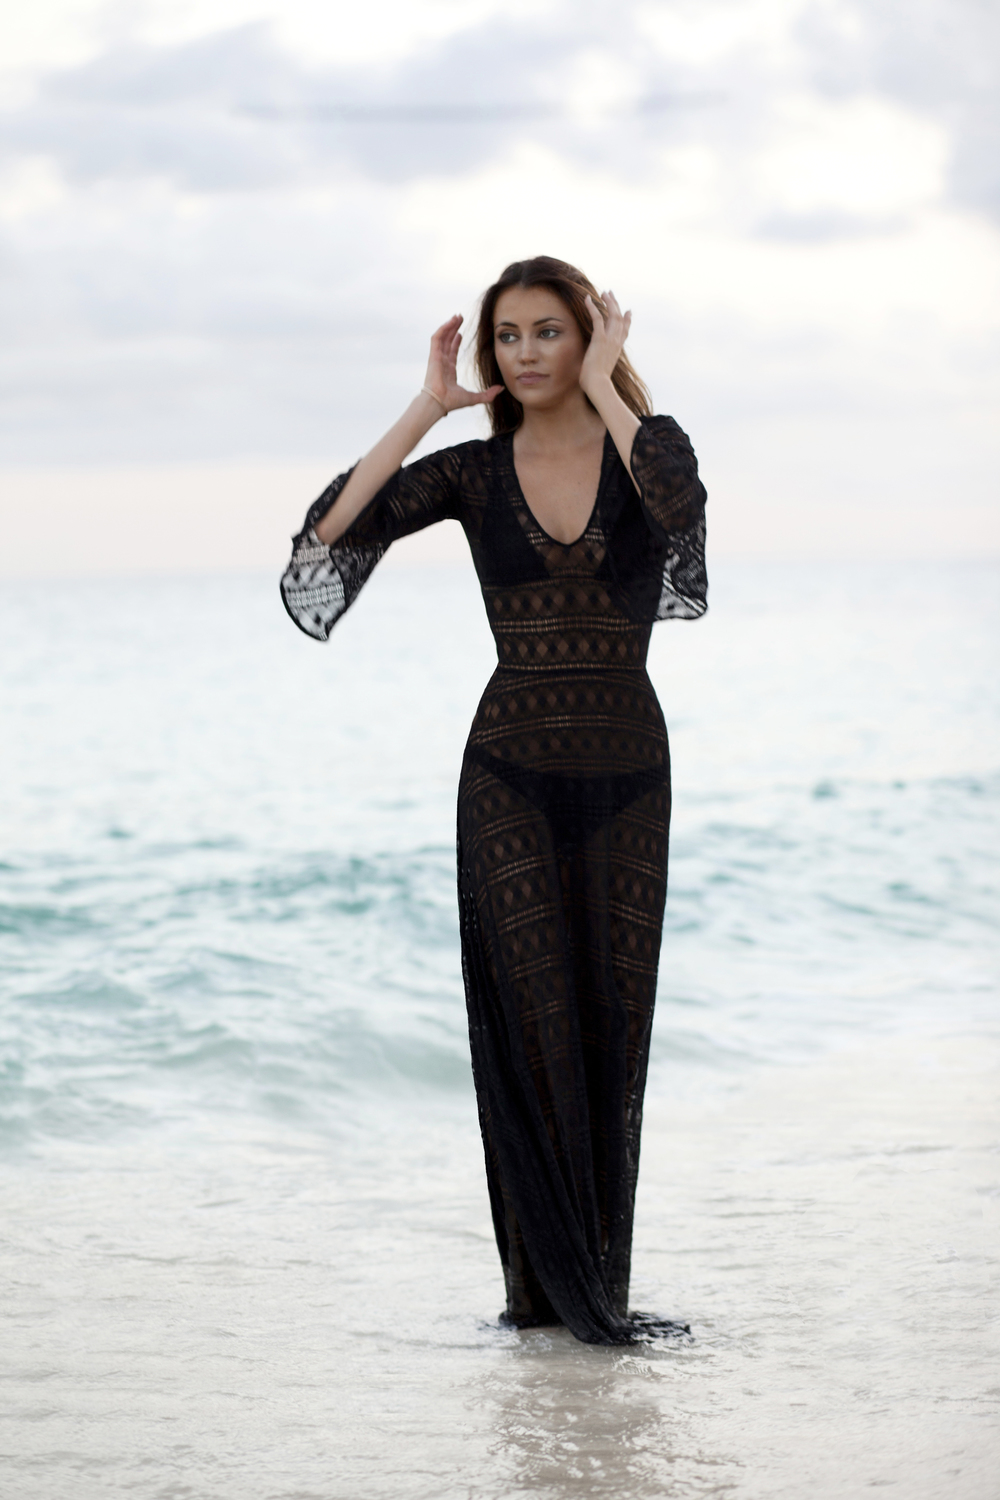 photo 6: Maureen is wearing a black dentelle pinko maxi dress on the beach in Bali at sundown.